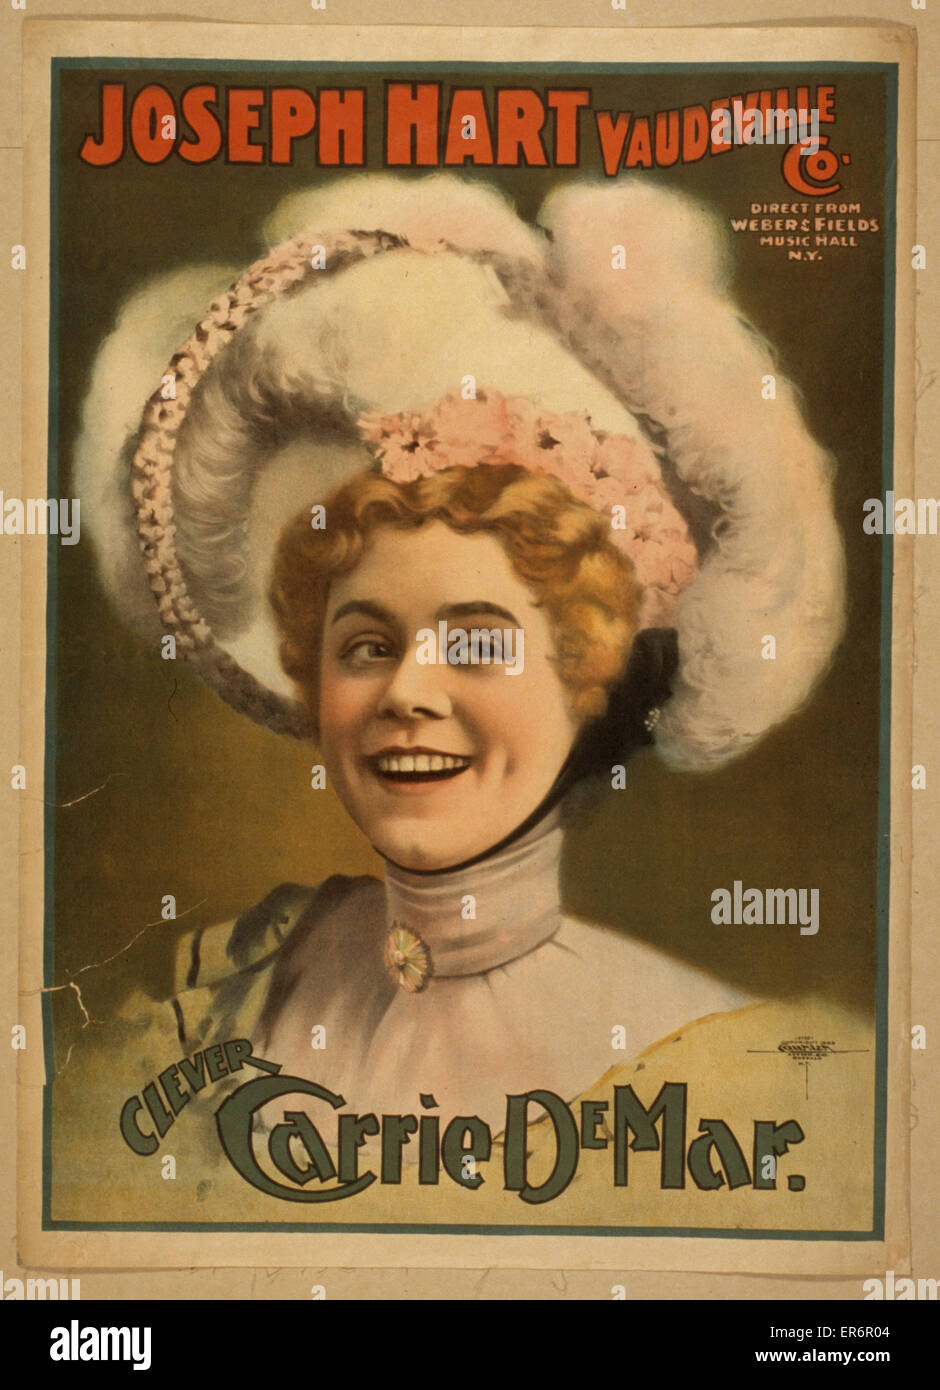 Joseph Hart Vaudeville Co. direct from Weber & Fields Music Hall, N.Y. Date c1899. - Stock Image